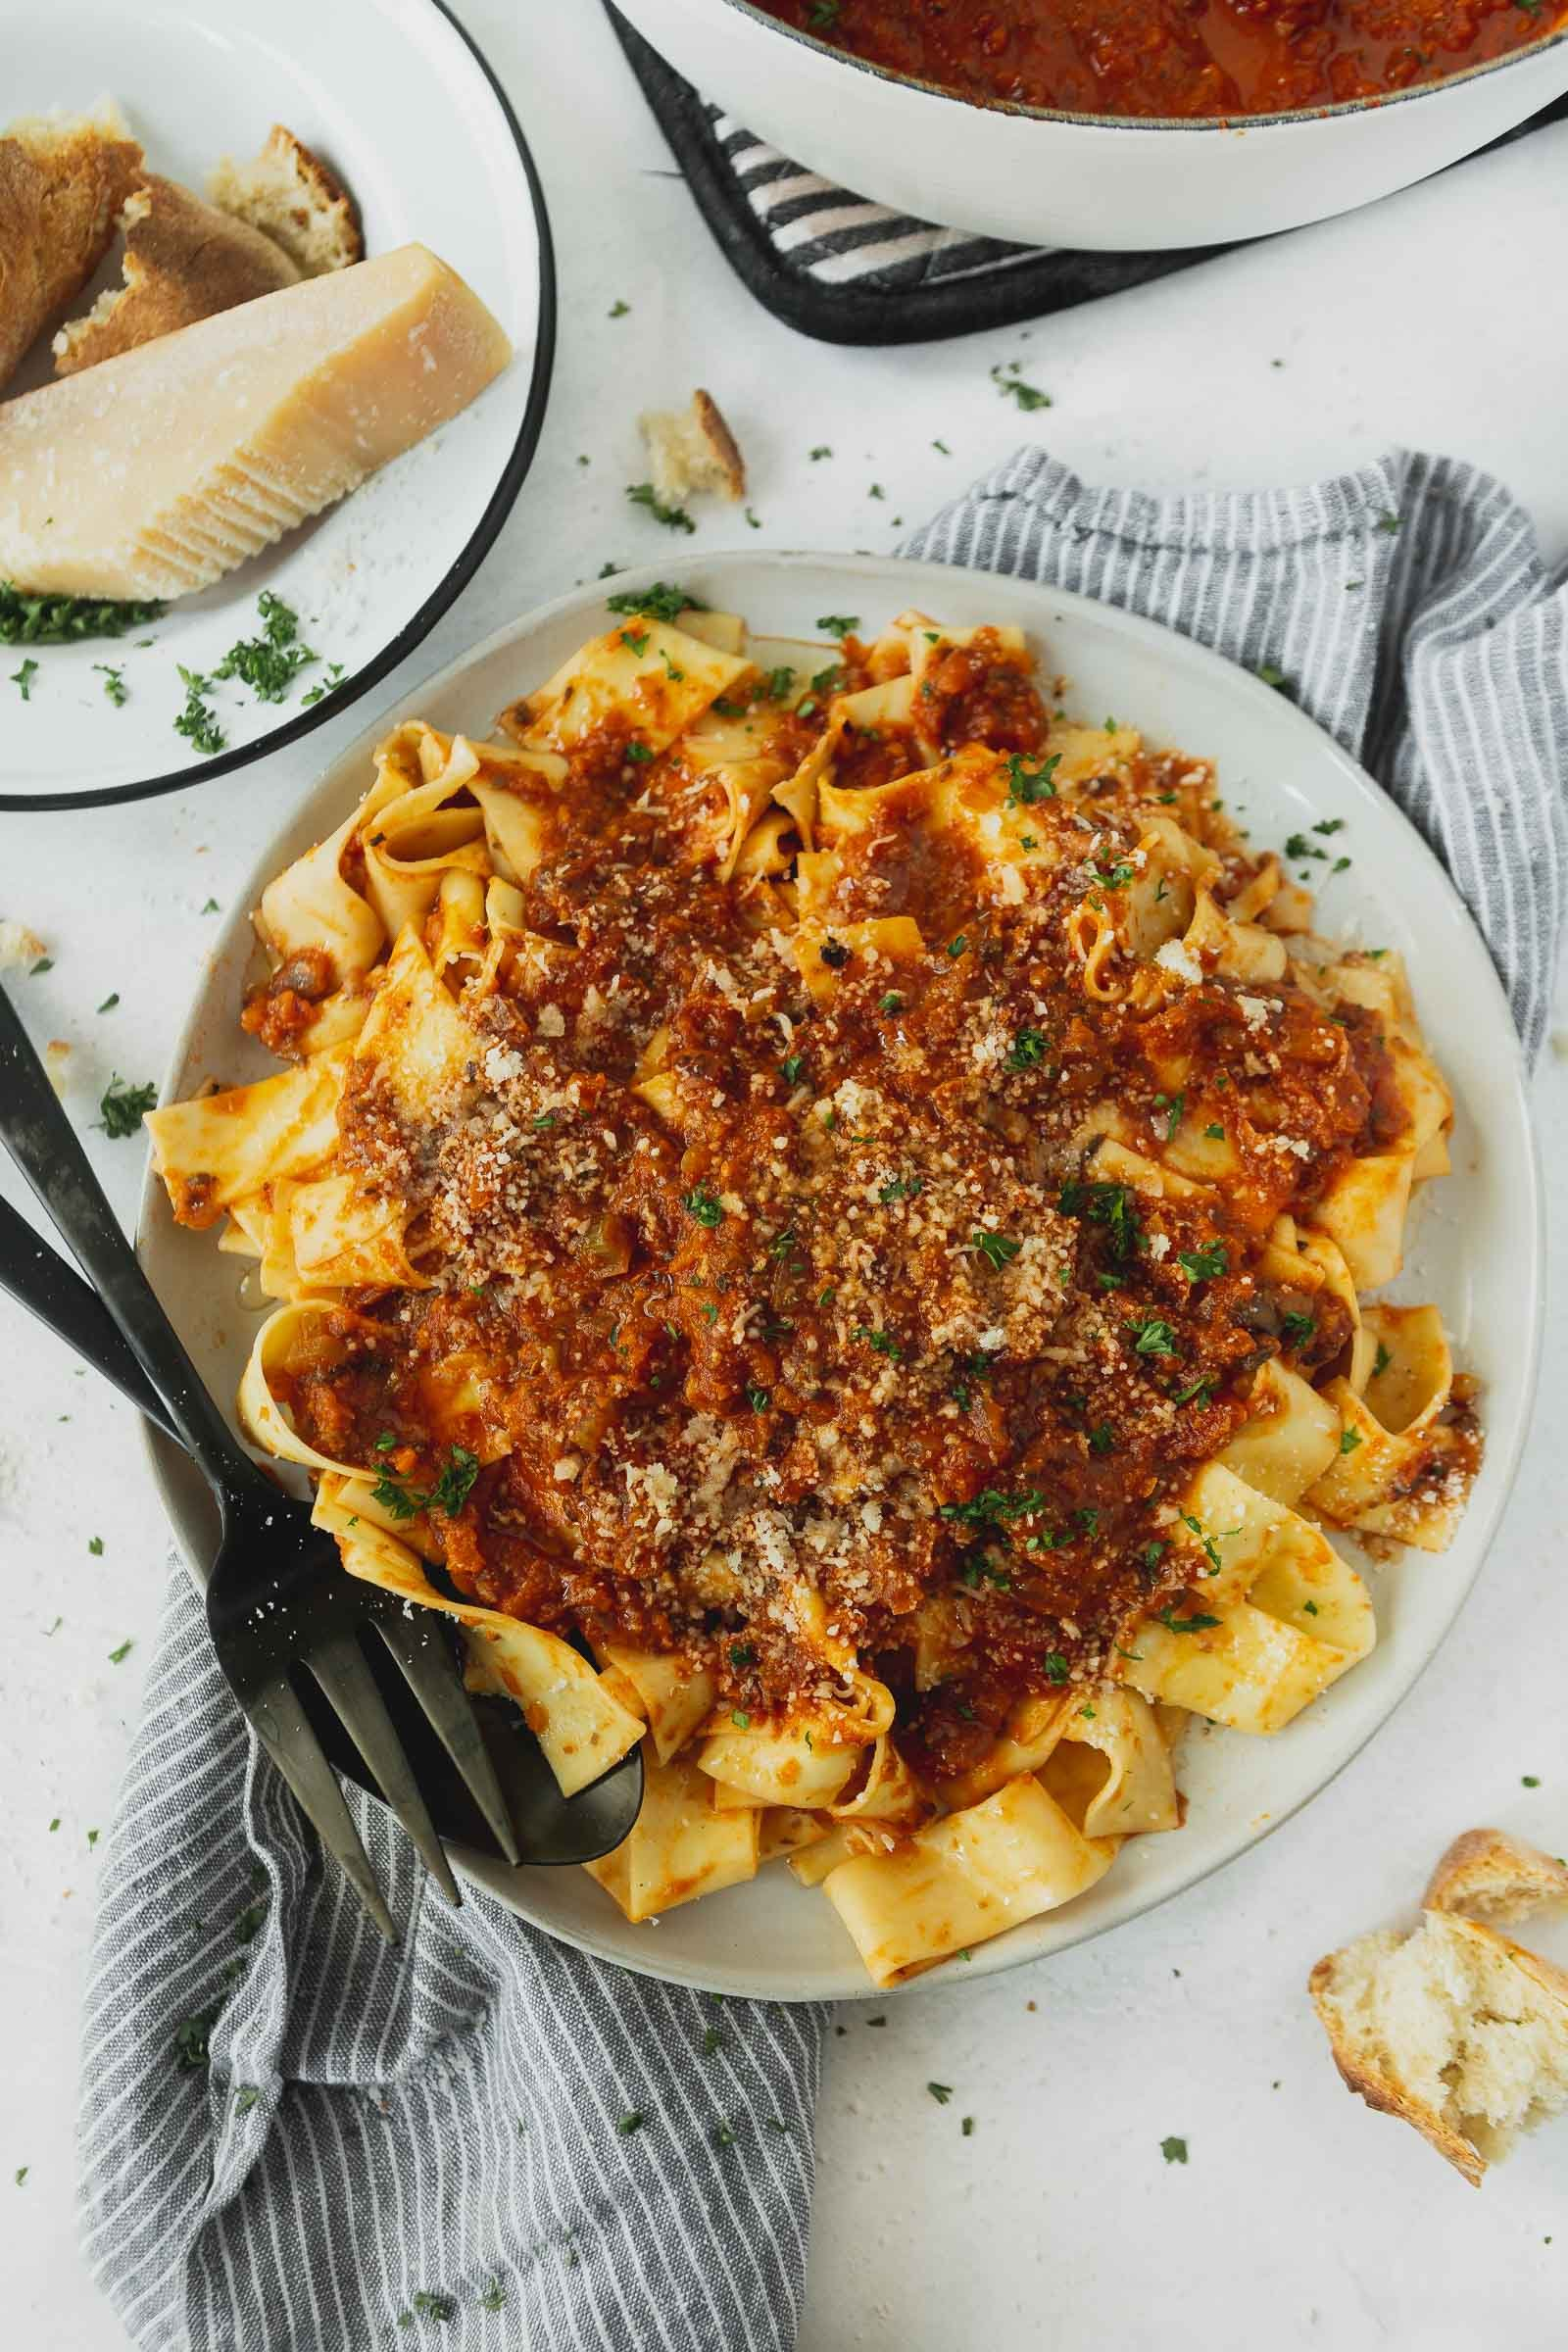 A dinner plate of pasta topped with vegan bolognese sauce, It is a thick red sauce and there are cilantro leaves sprinkled on top and a fork is on the plate next to the pasta.